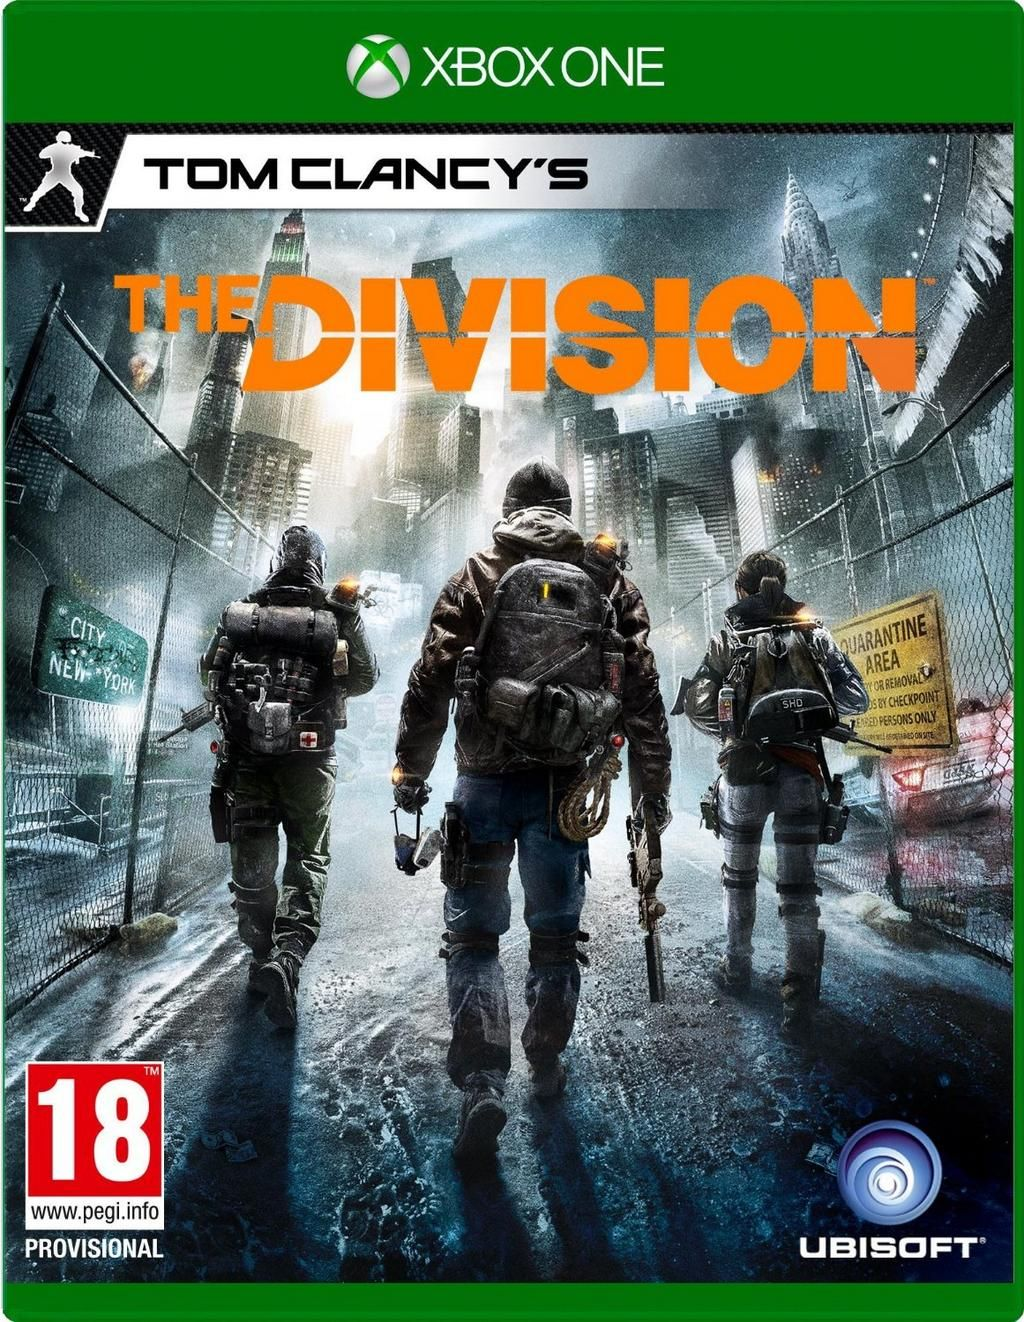 TRENDING Tom Clancy's The Division Xbox One Game pre-order £41